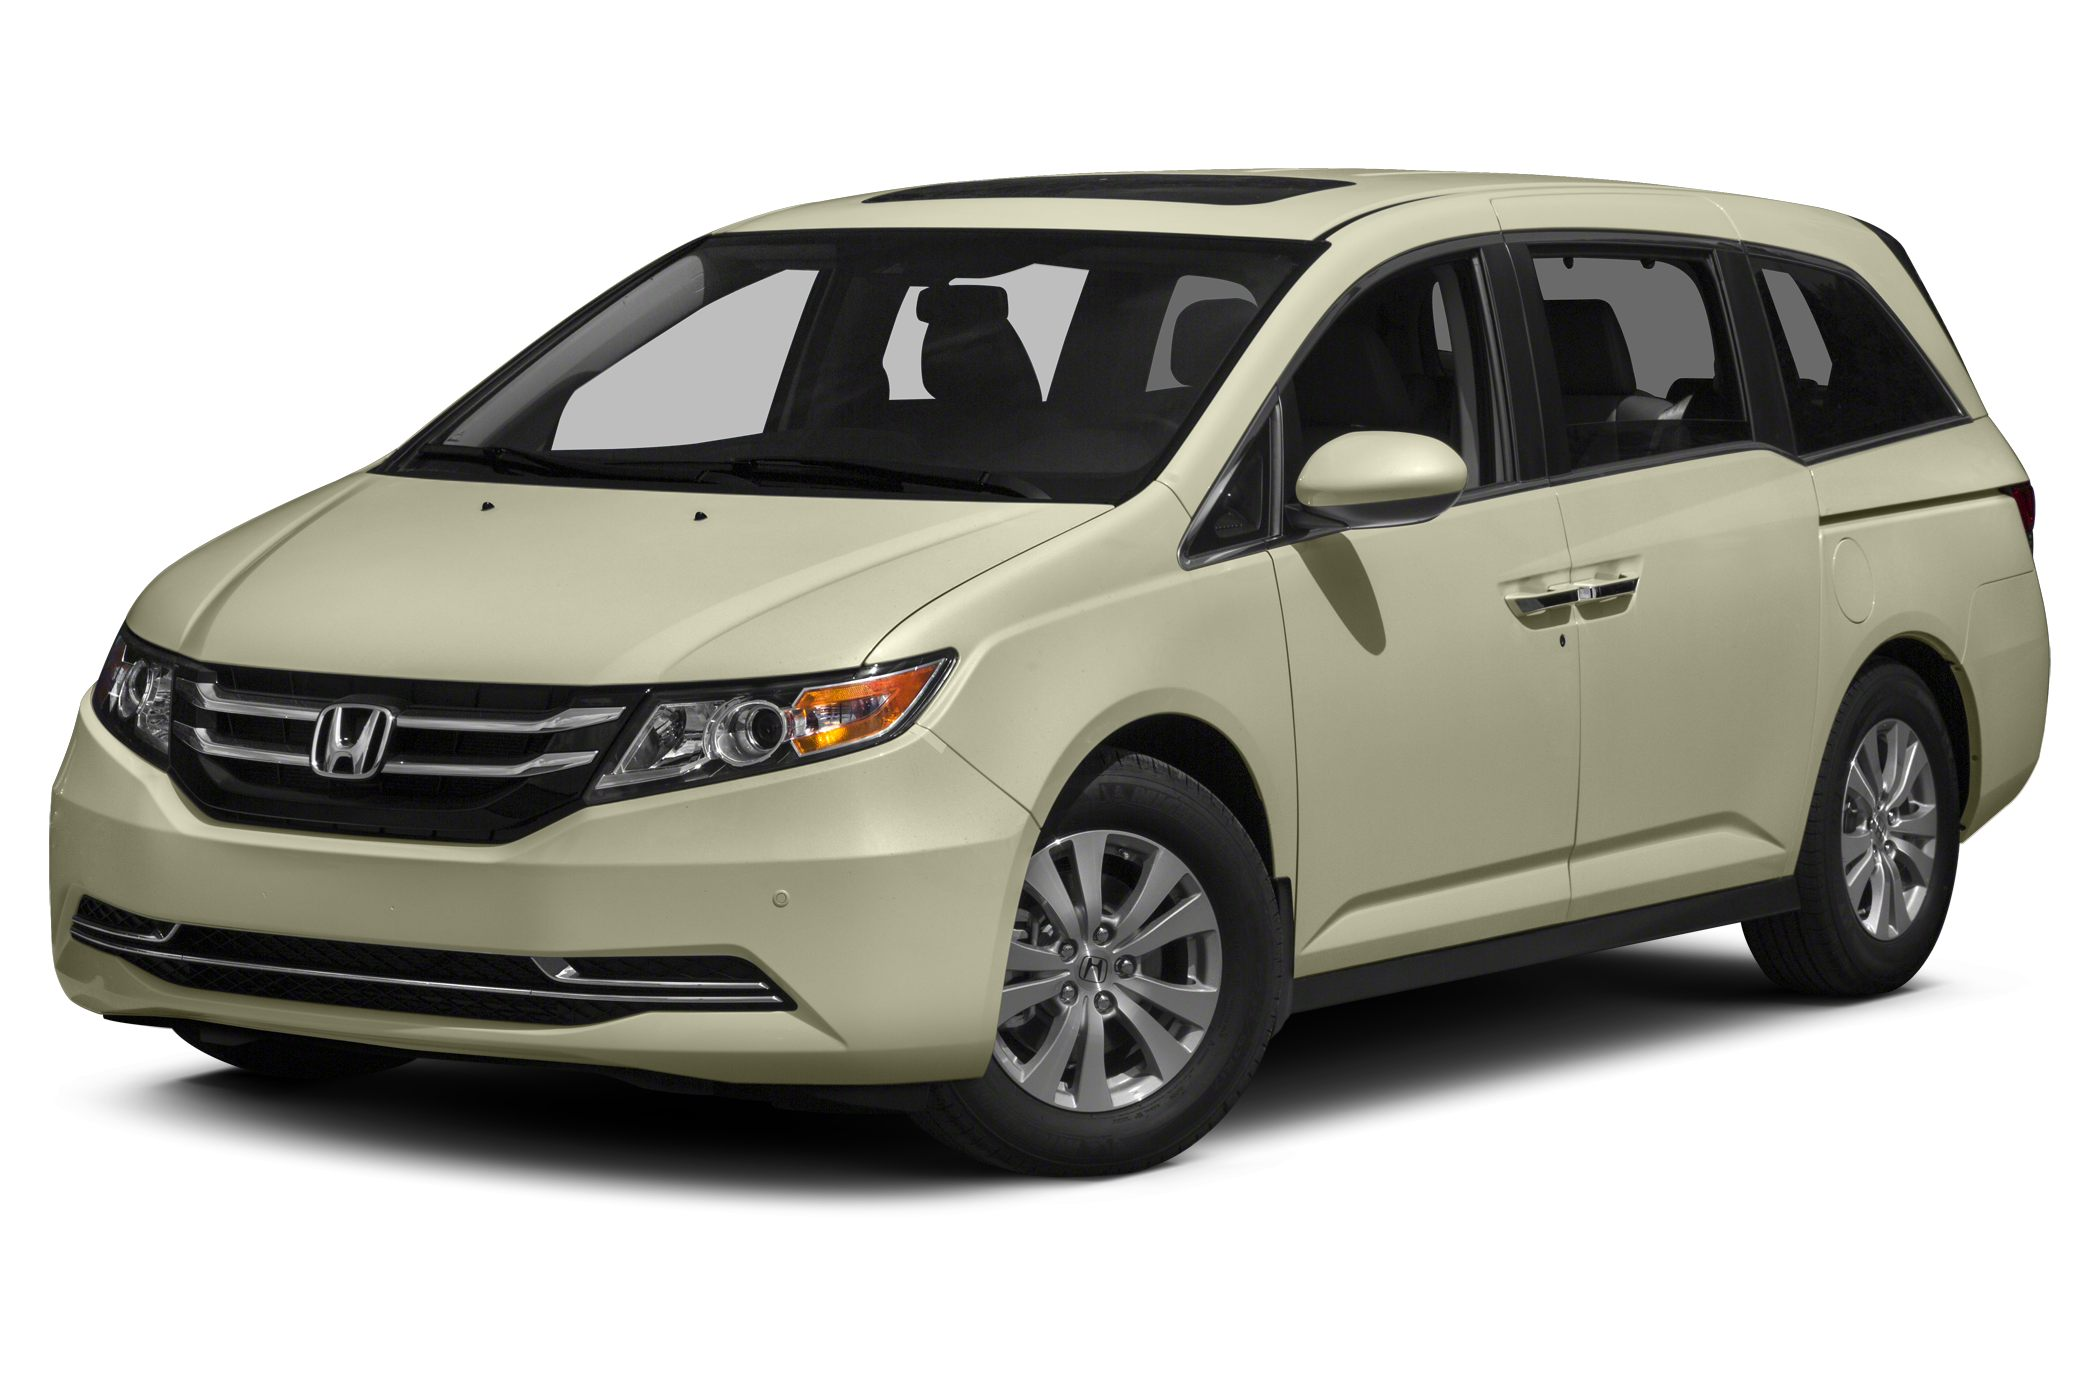 2015 Honda Odyssey EX-L Minivan for sale in Fargo for $36,655 with 0 miles.